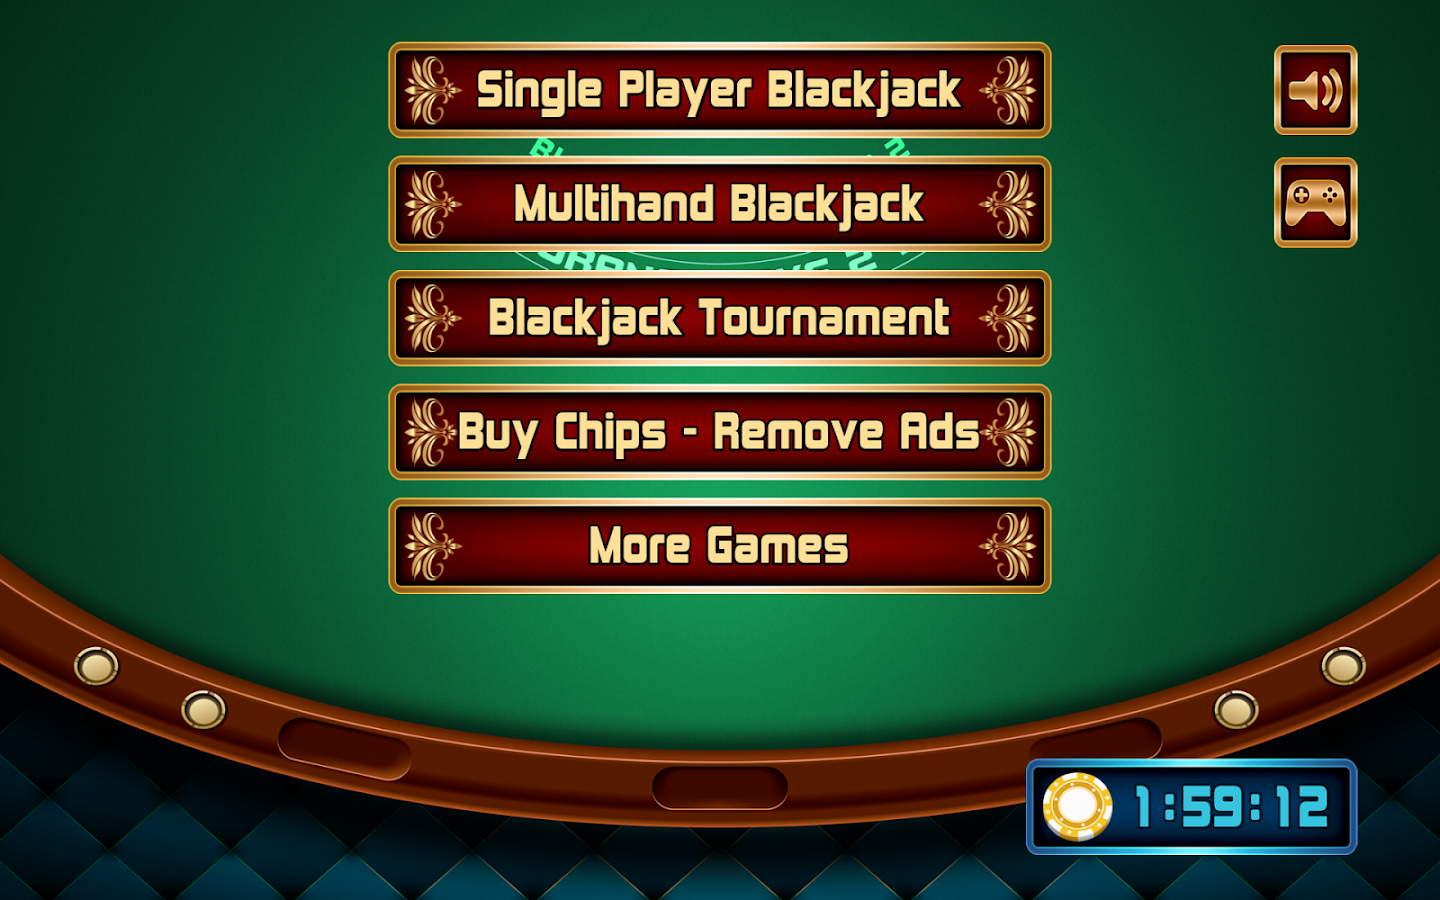 Google Blackjack